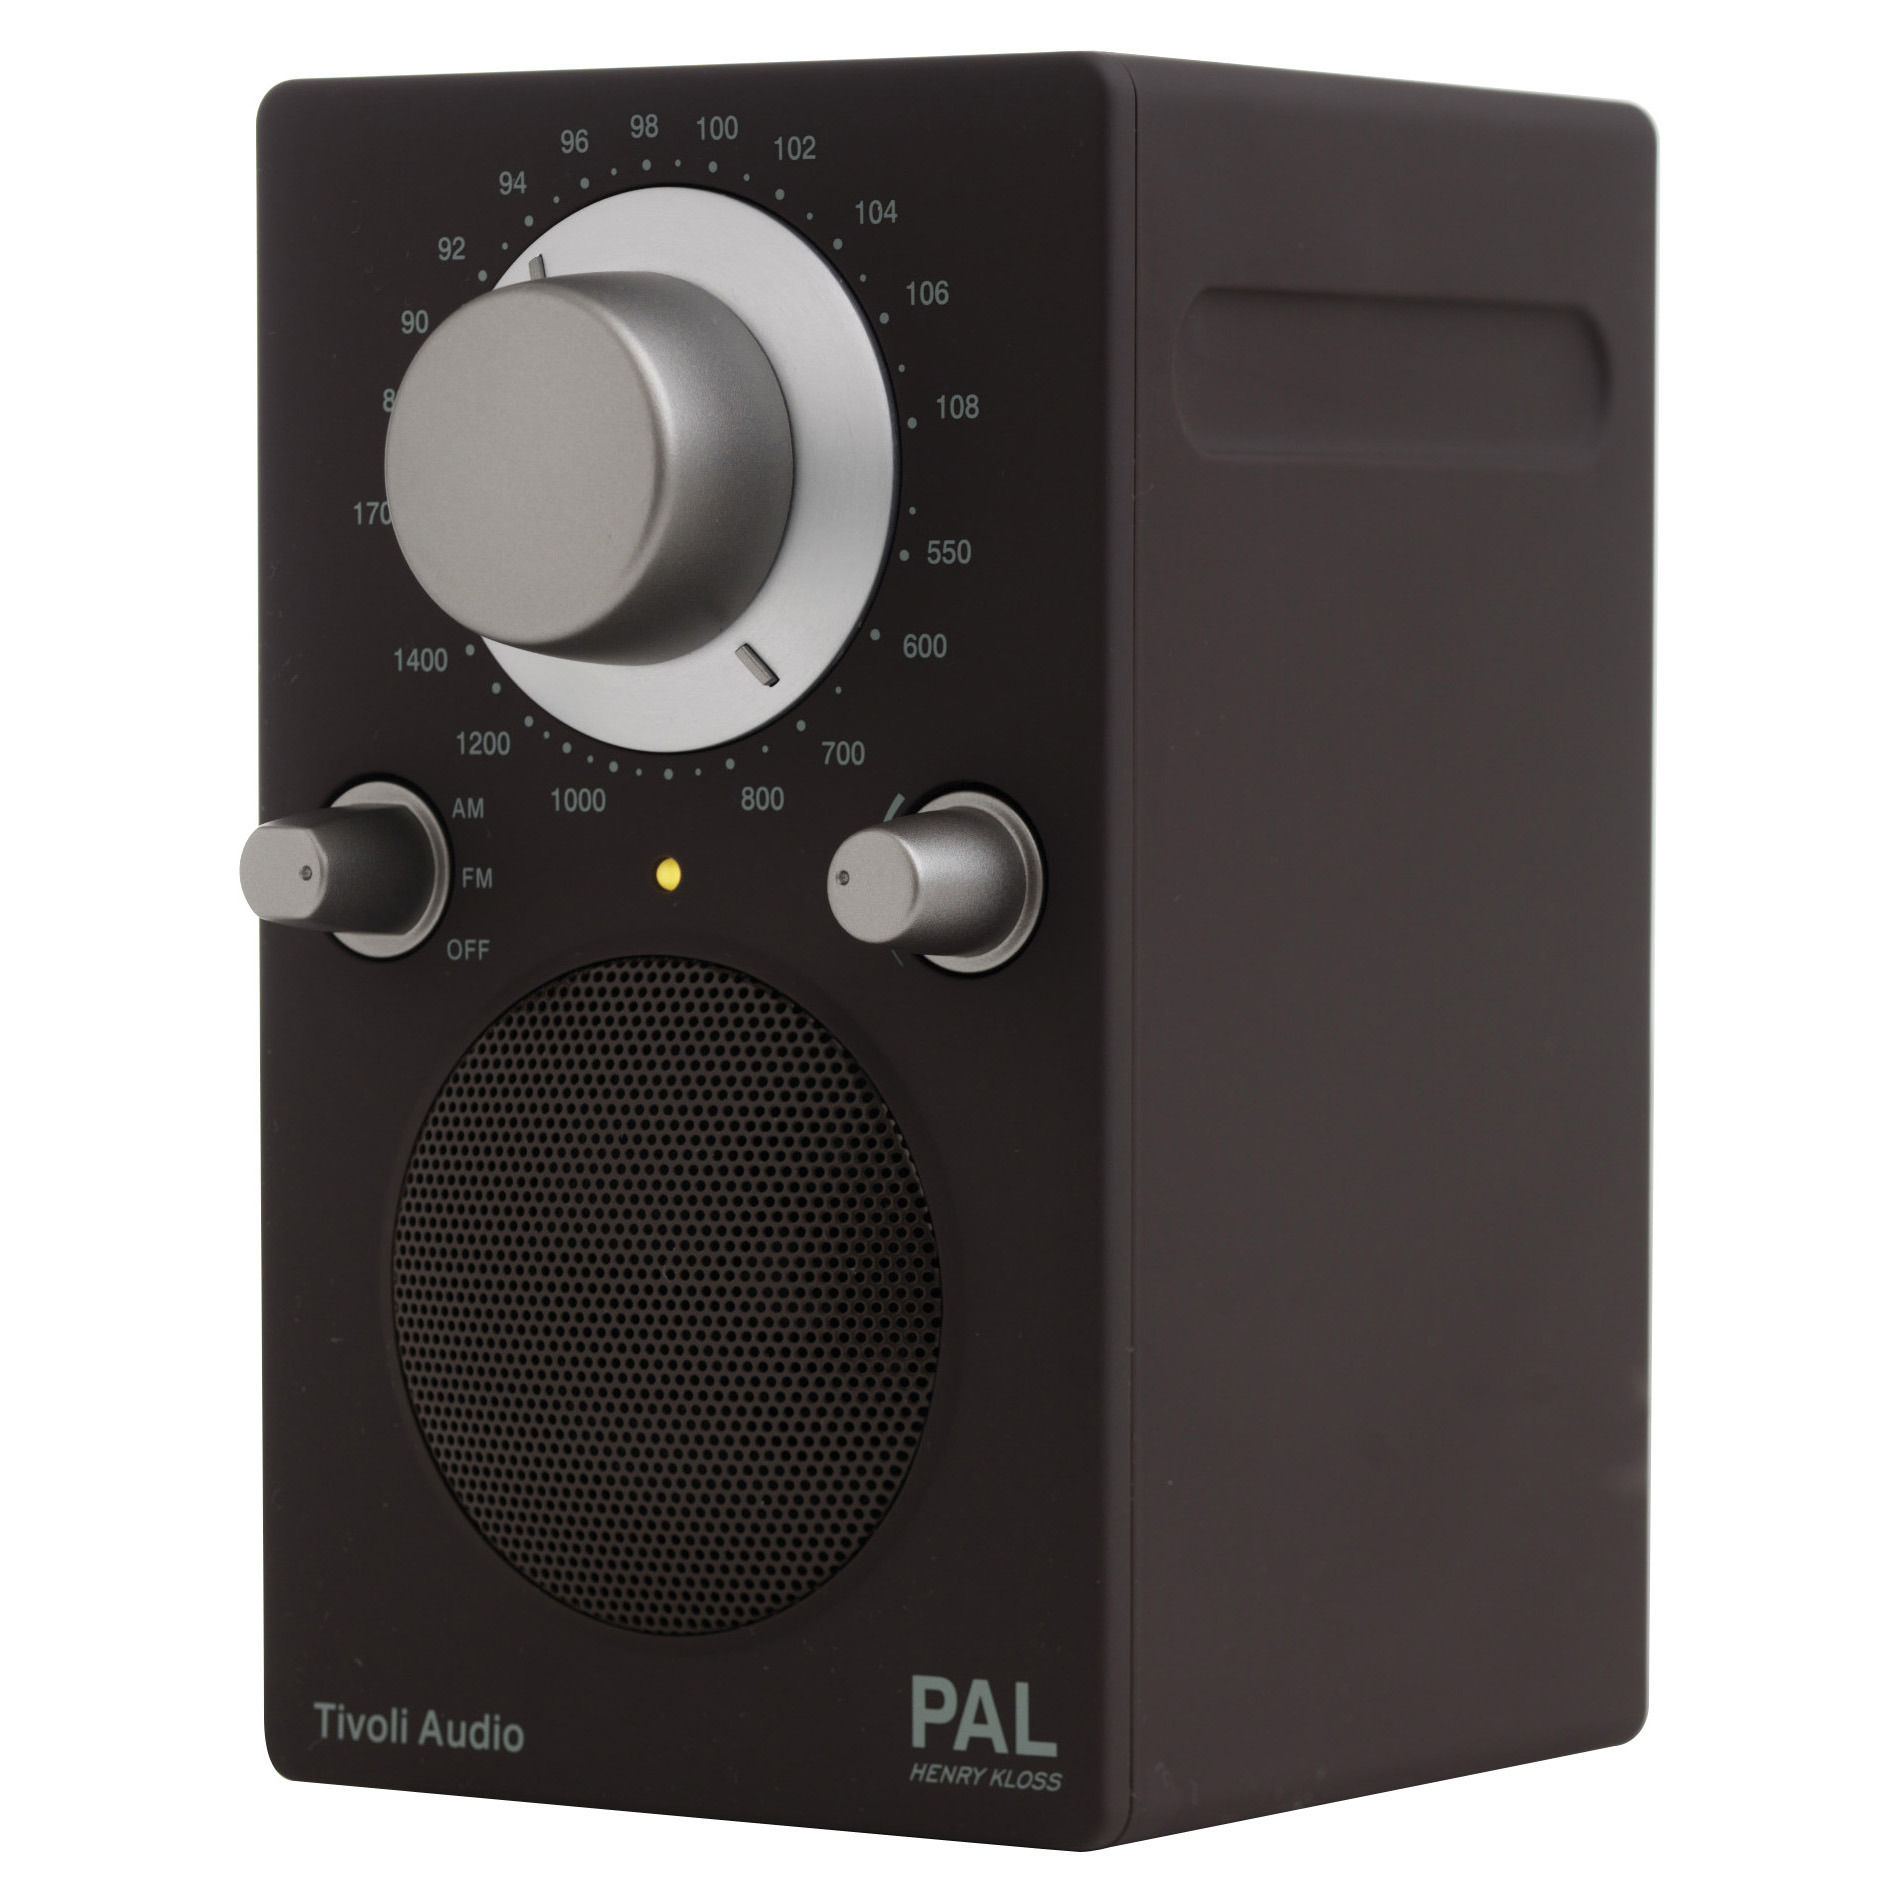 radio pal enceinte portative marron tivoli audio. Black Bedroom Furniture Sets. Home Design Ideas